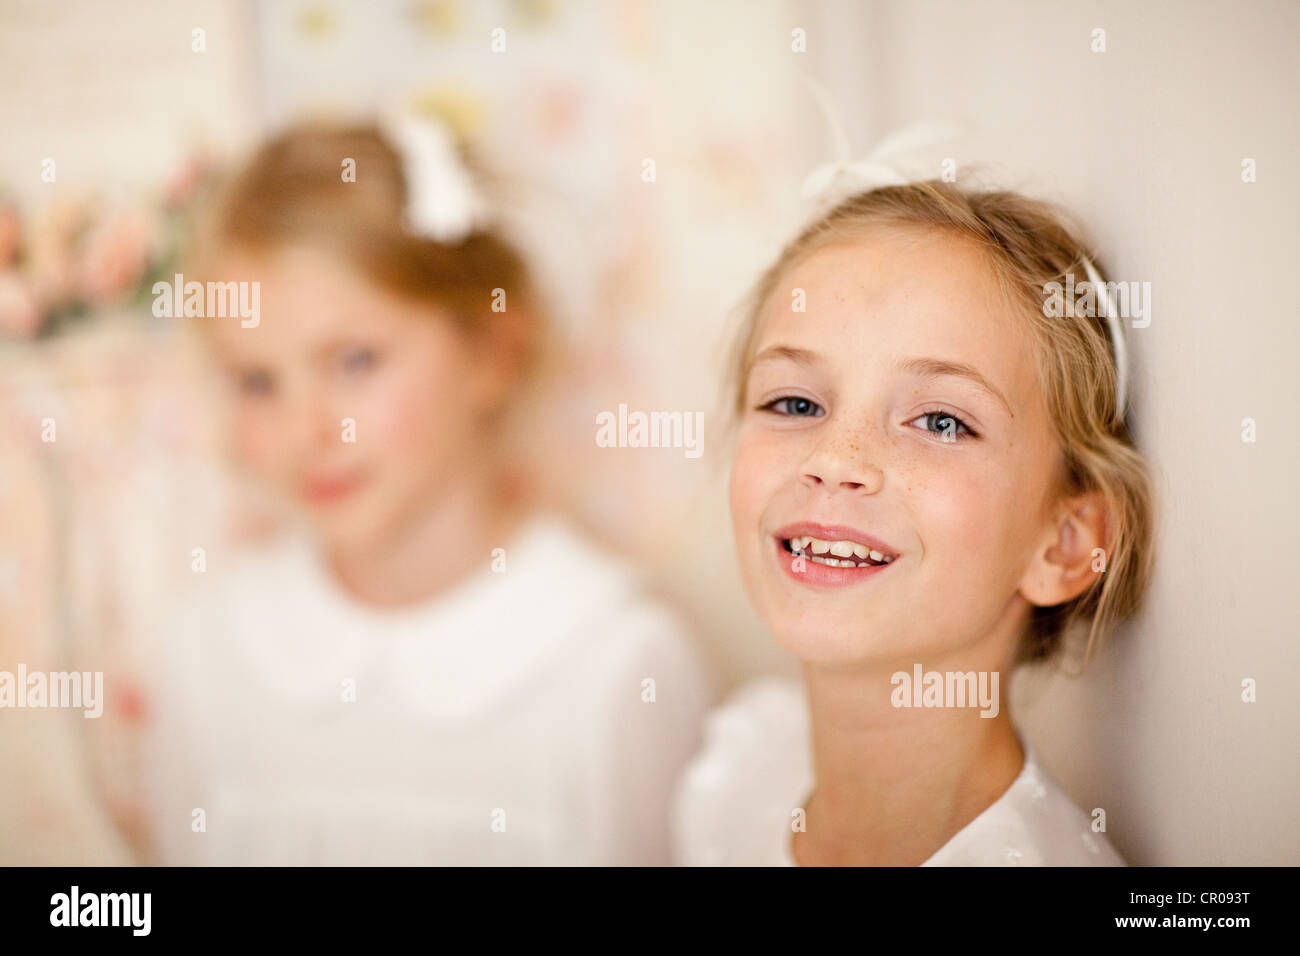 Close up of girls smiling face - Stock Image